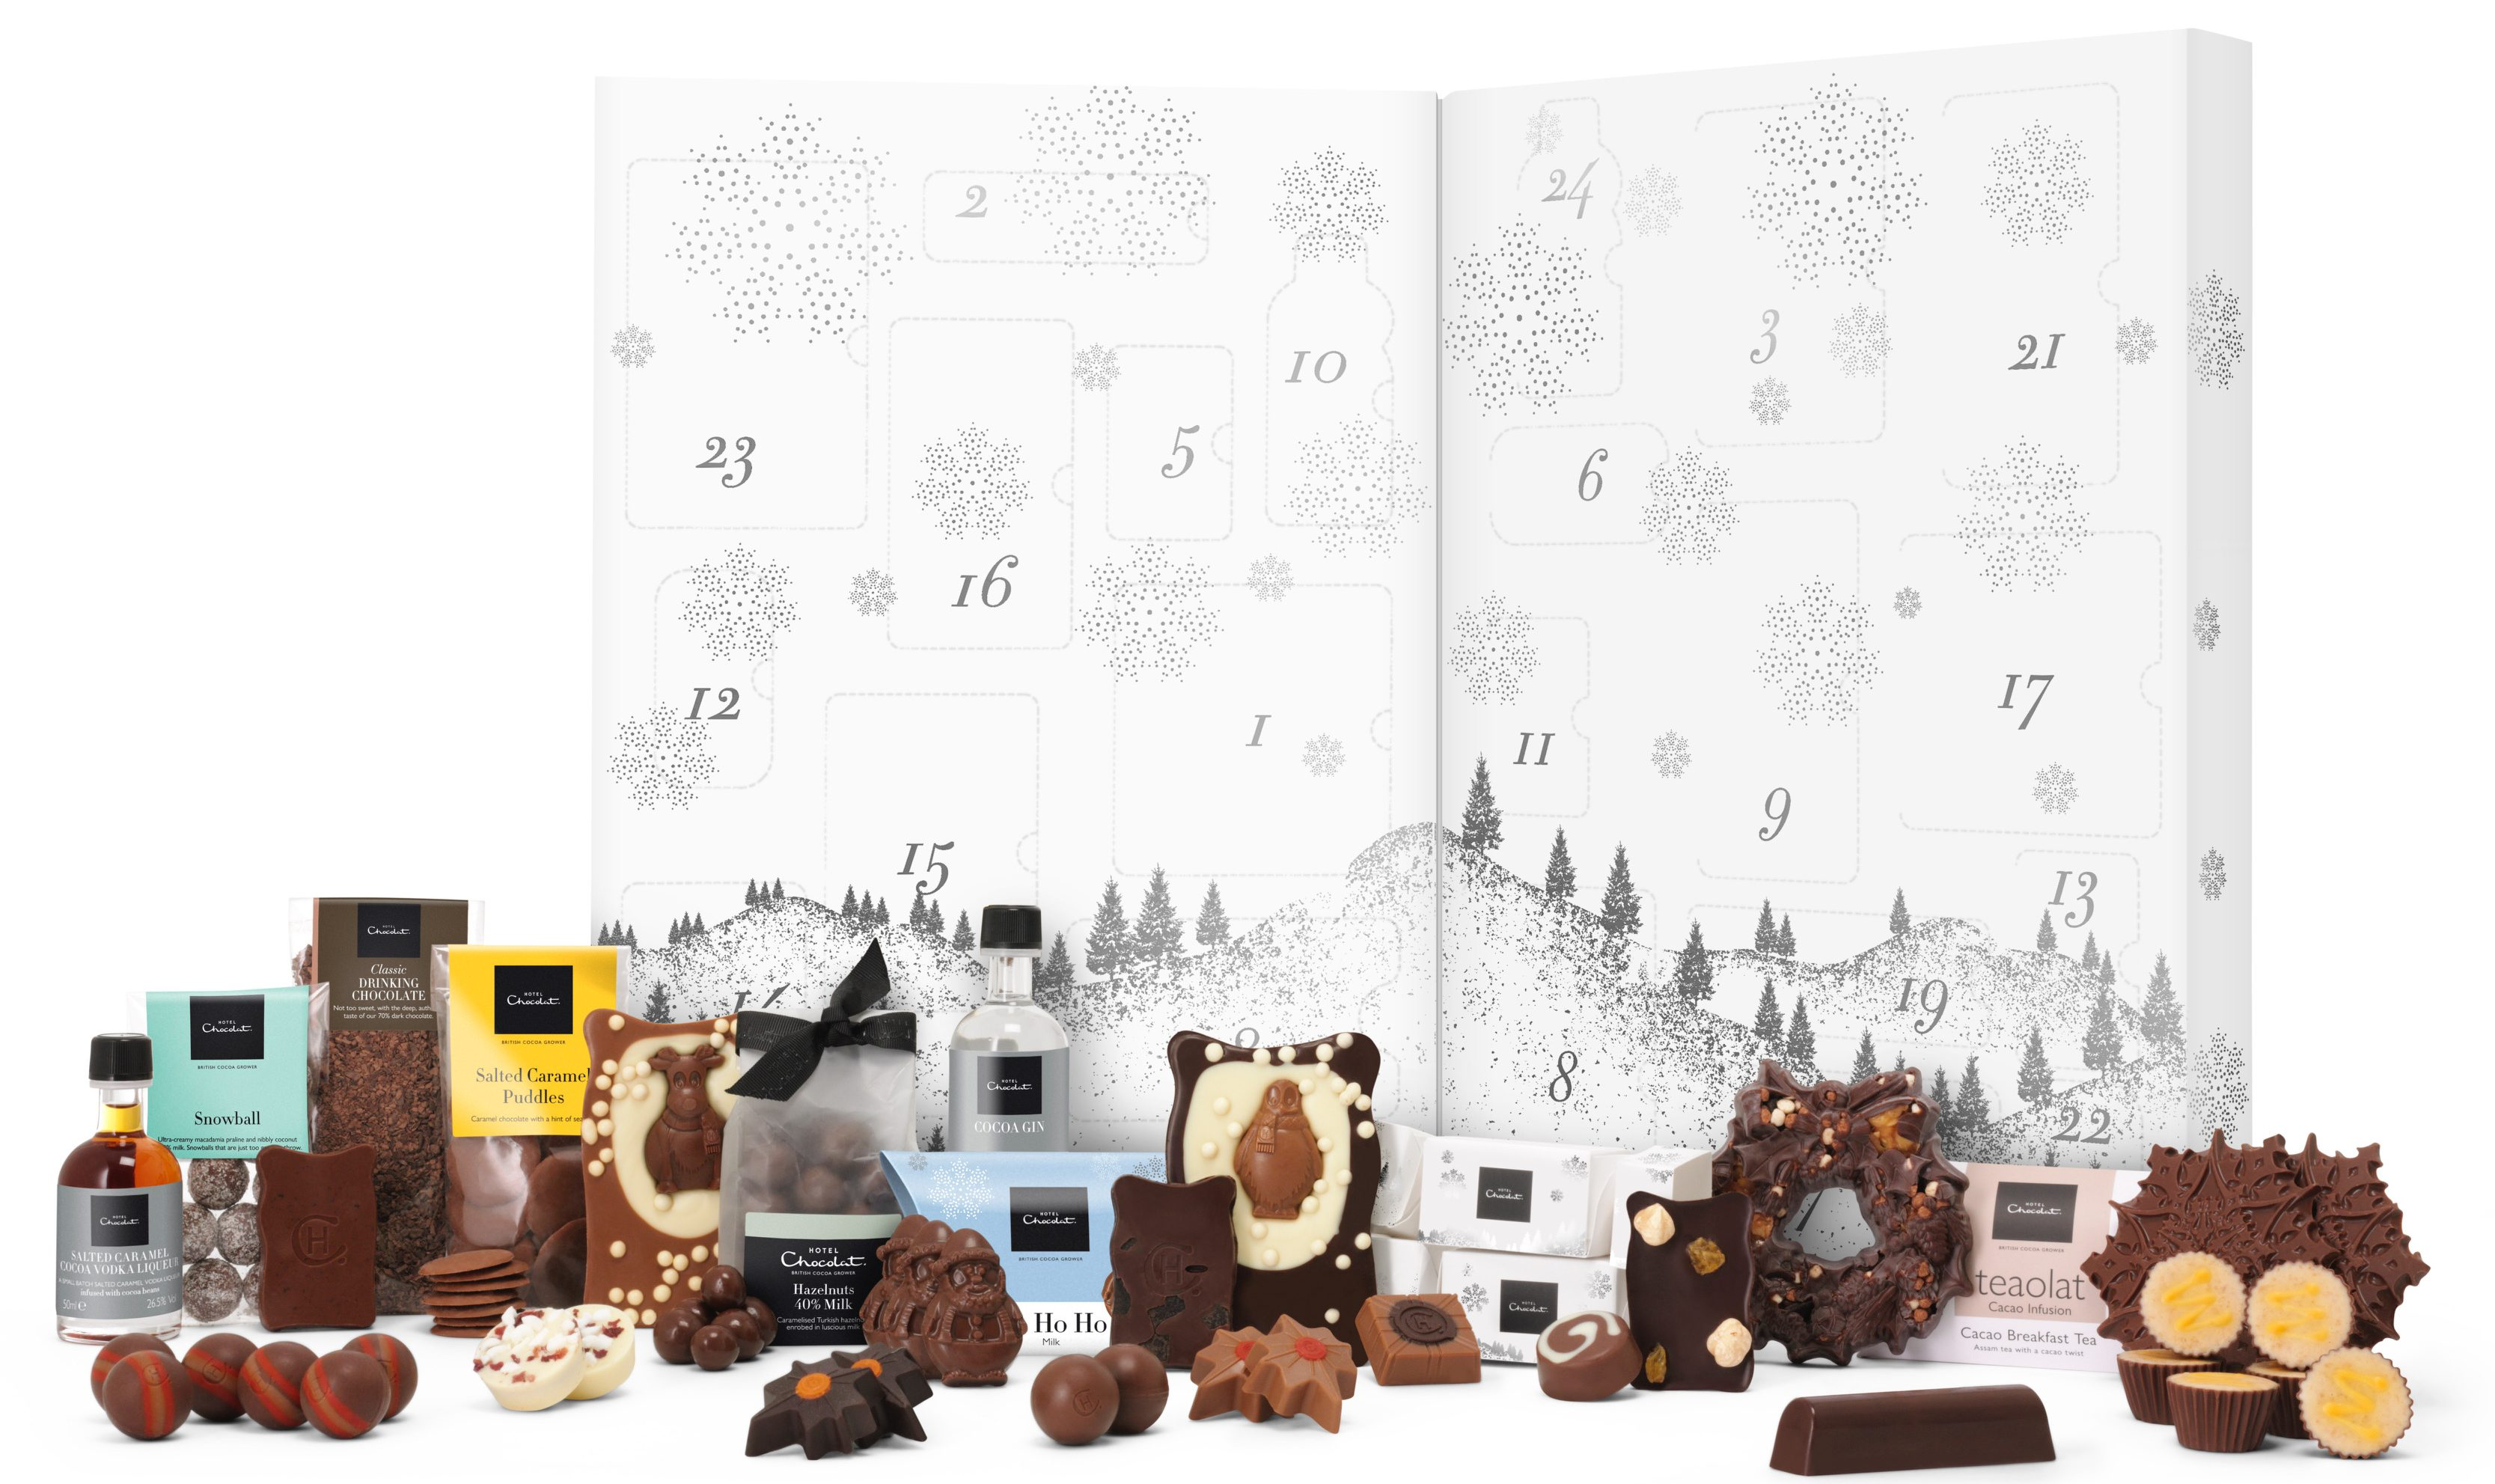 This giant Hotel Chocolat advent calendar contains gin and chocolate